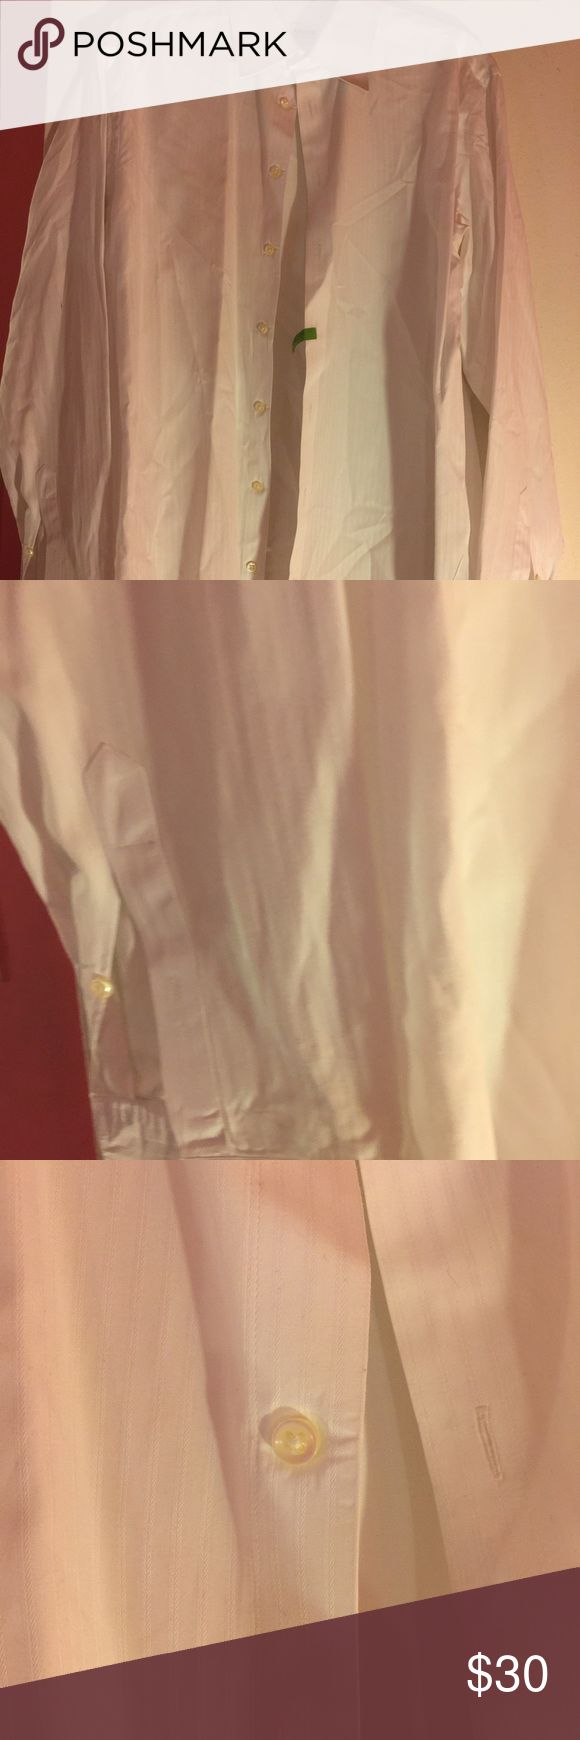 WHITE ARMANI SHIRT 41-16 LARGE WHITE ARMANI SHIRT IN EXCELLENT SHAPE WILL NEED TO DRY CLEAN ❤️️❤️️❤️️❤️️ armani Shirts Dress Shirts